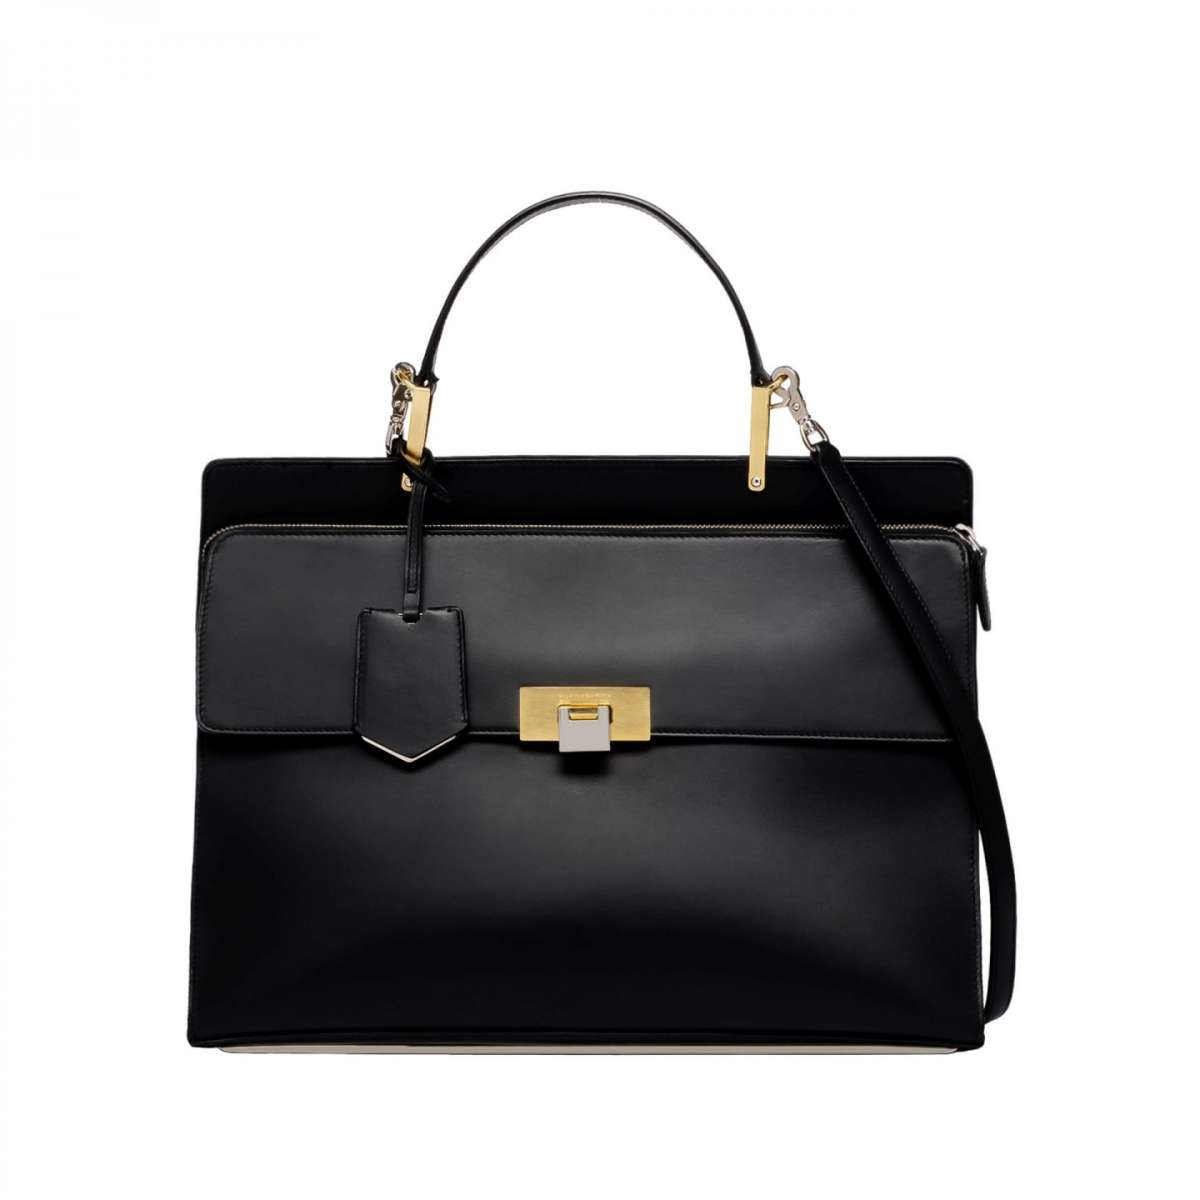 Handbag Le Dix Cartable Balenciaga